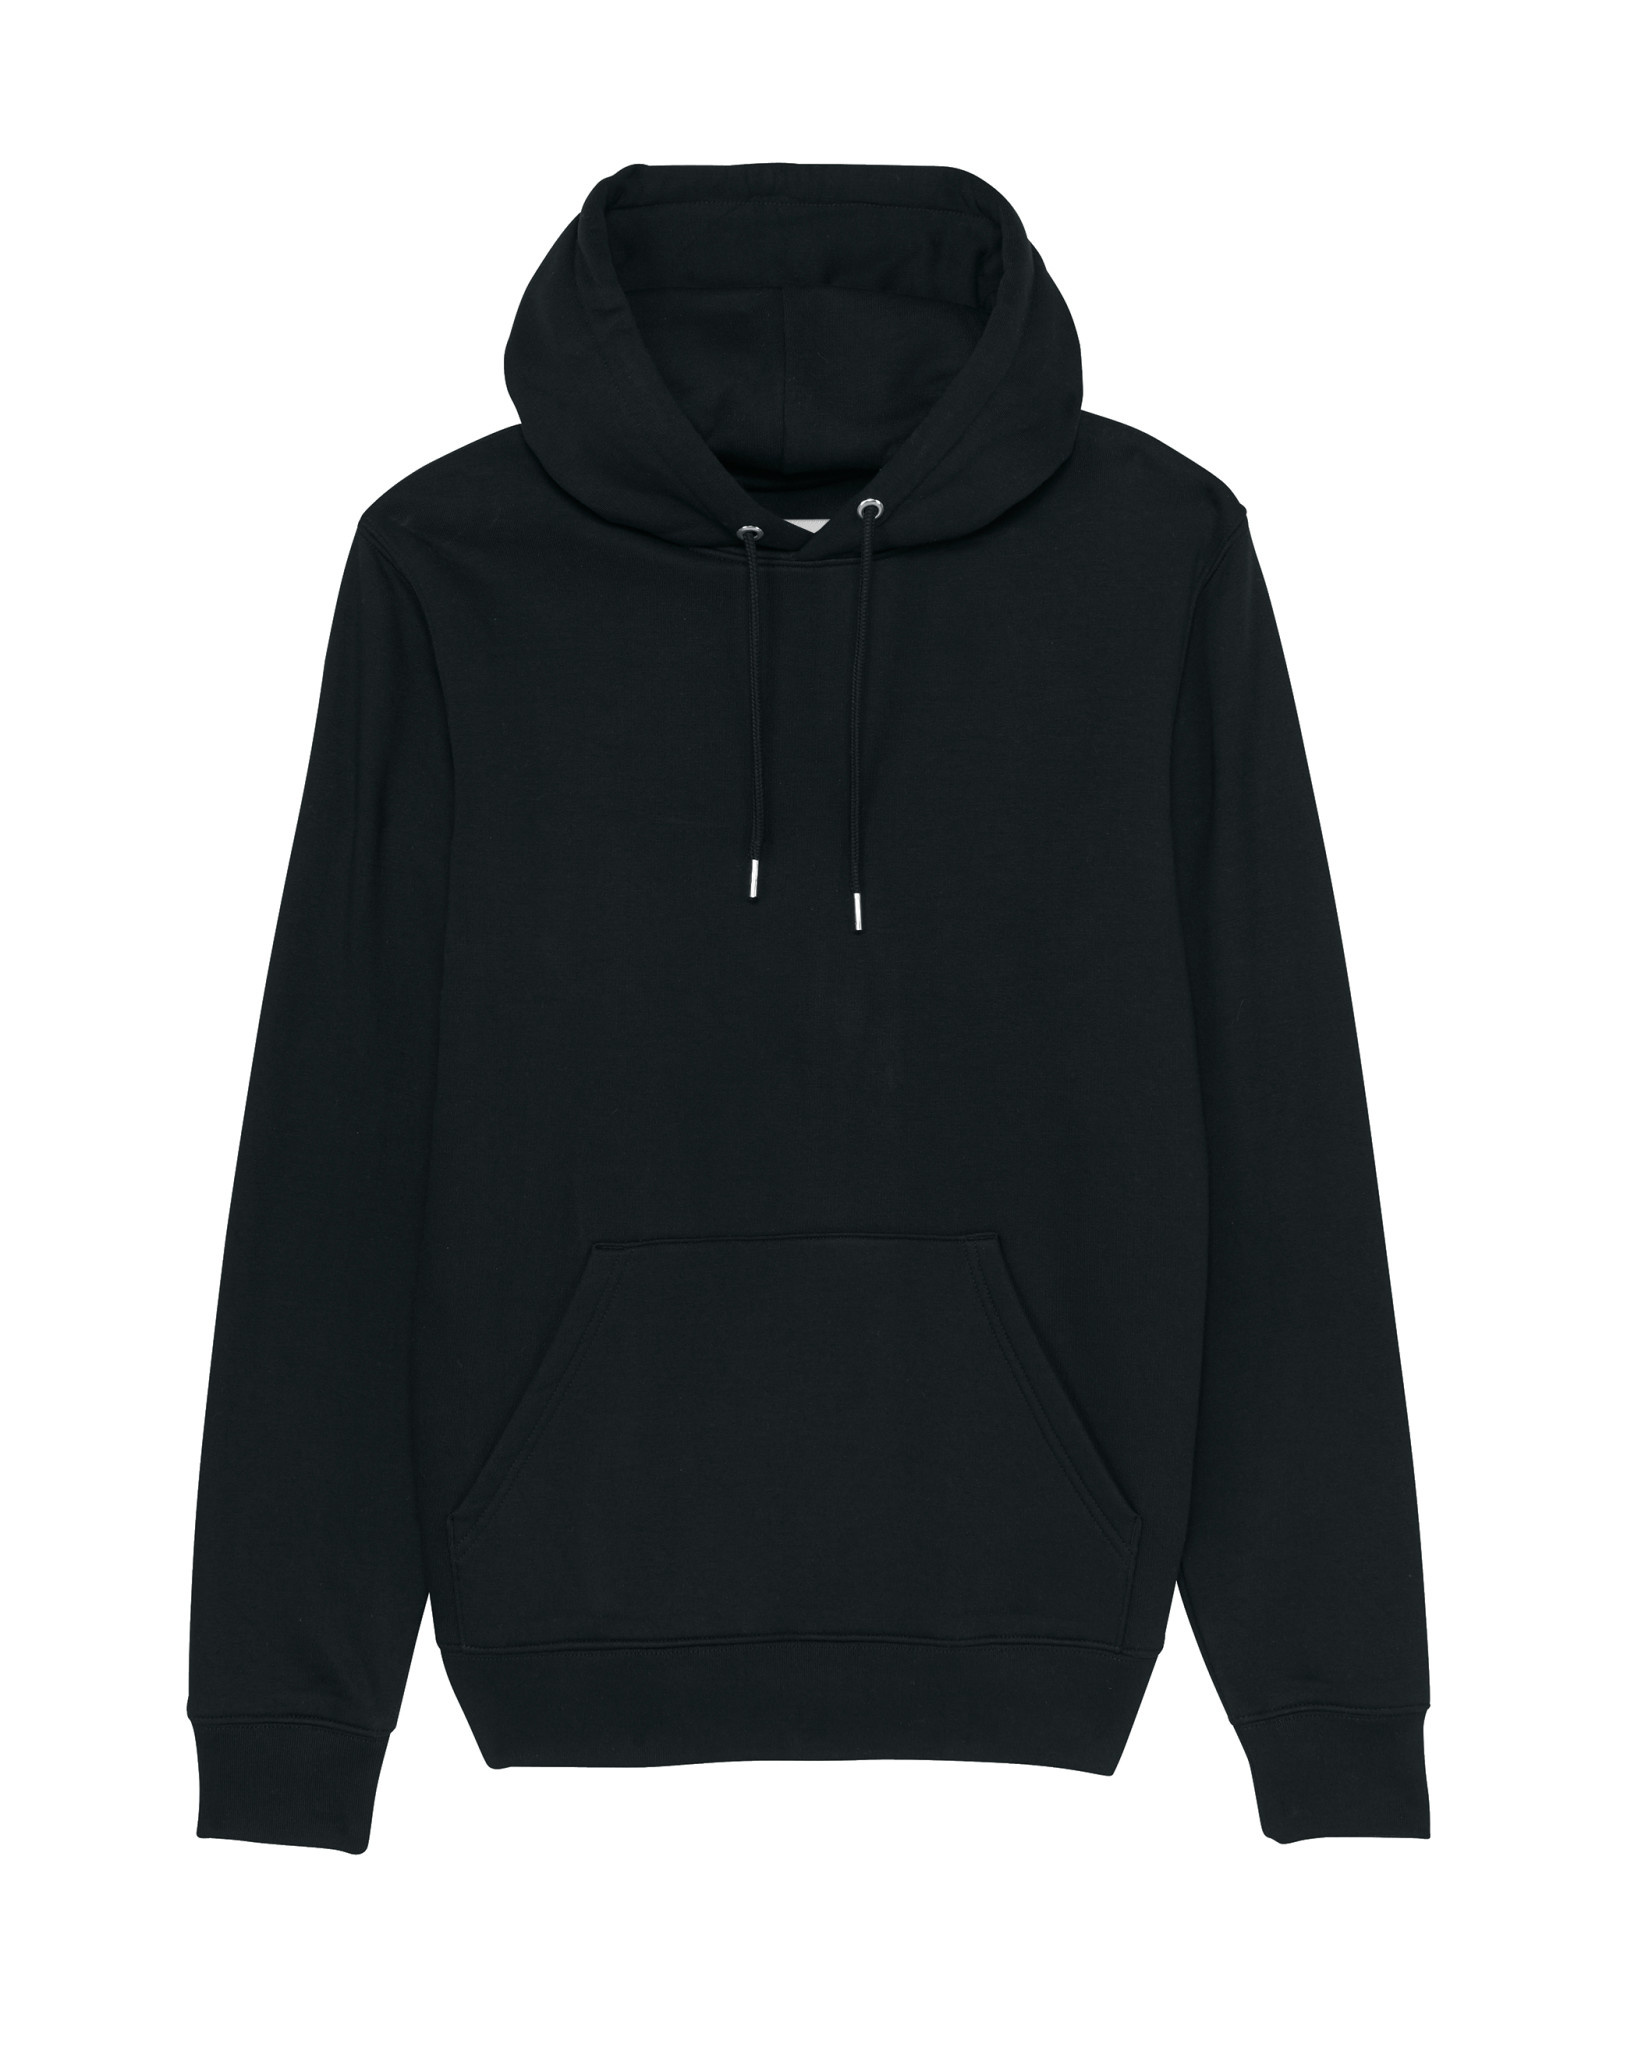 GOAT Apperal Goat Avery Unisex Hooded Sweat Black